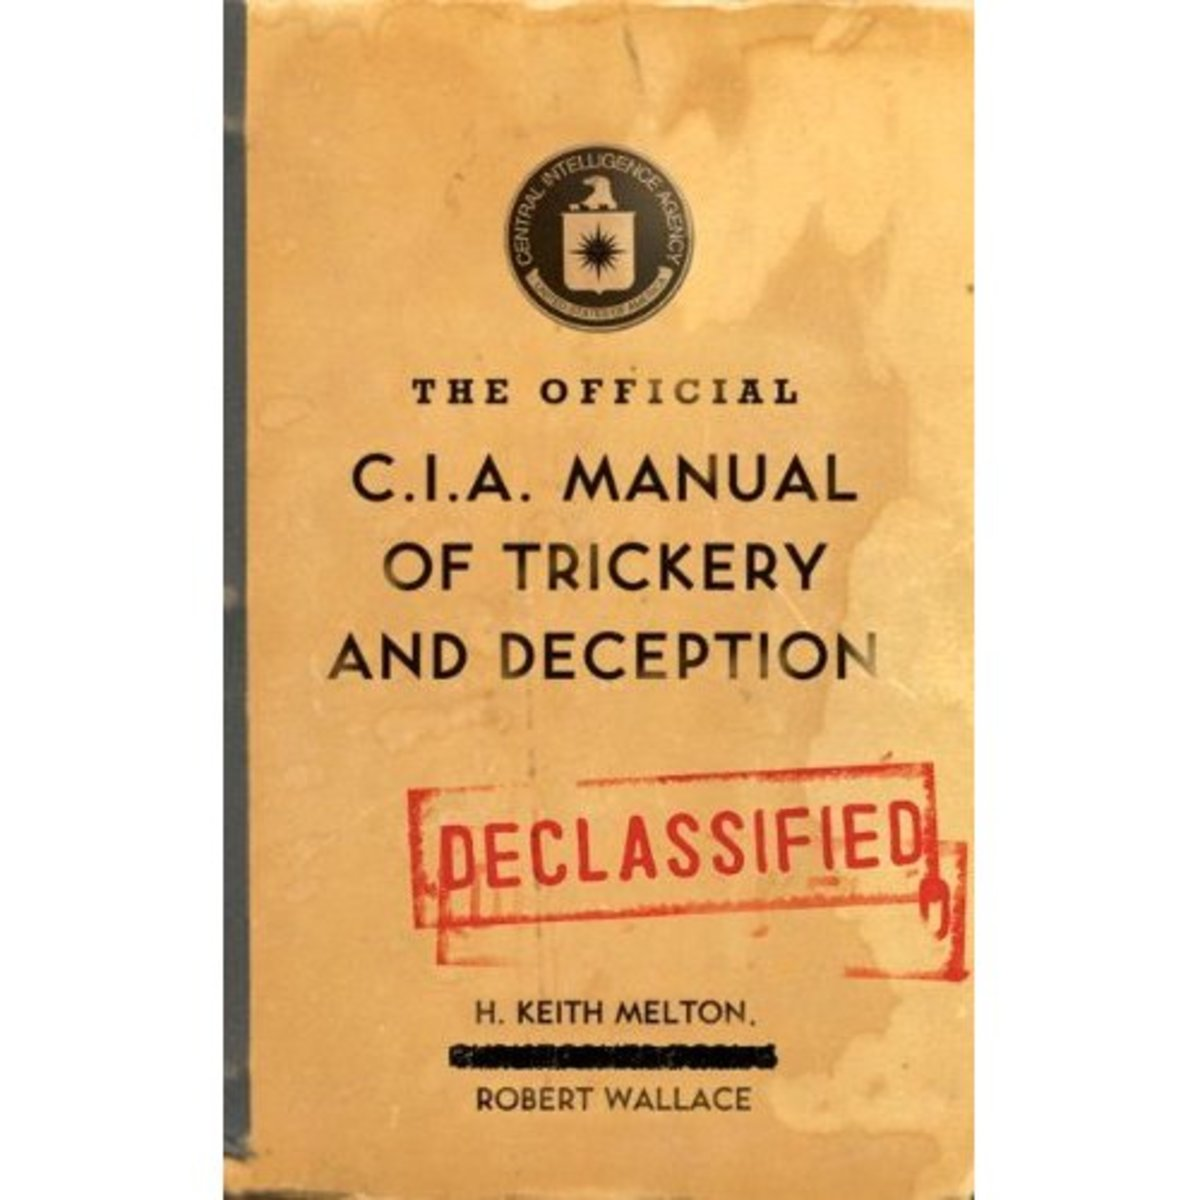 cia_manual_of_trickery_and_deception_1